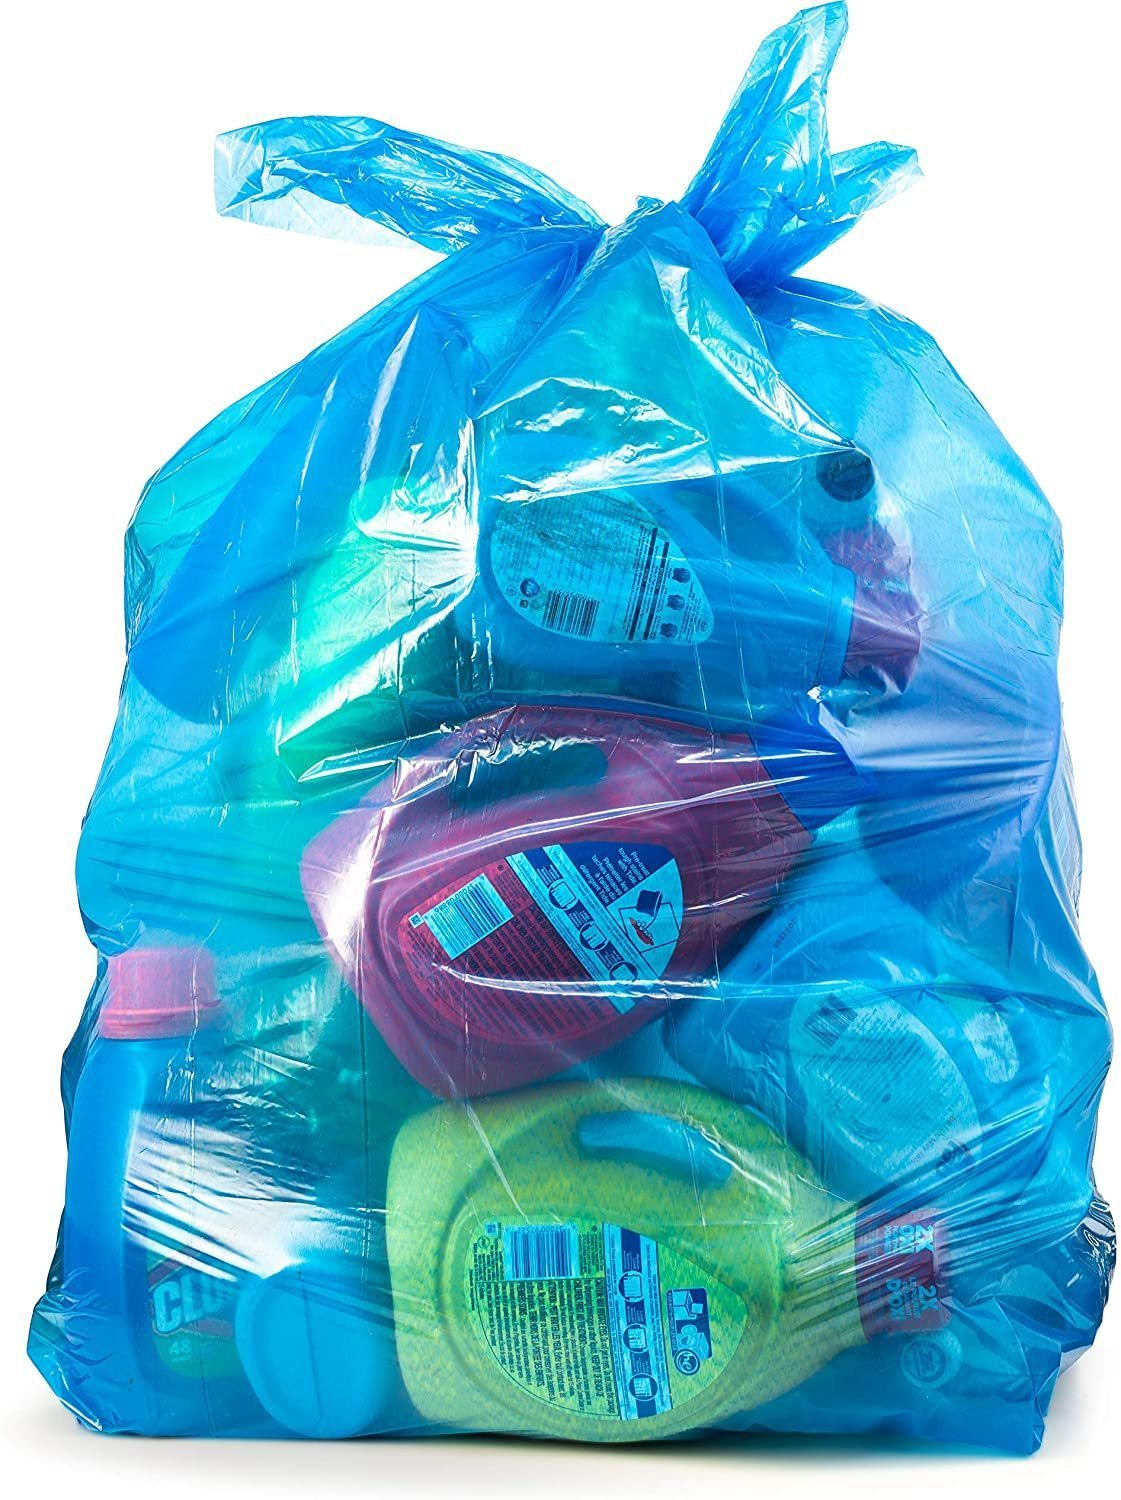 Clear Trash Bags, 33 Gallon, Large Recycling Plastic Garbage Bags, 100/Count, 33